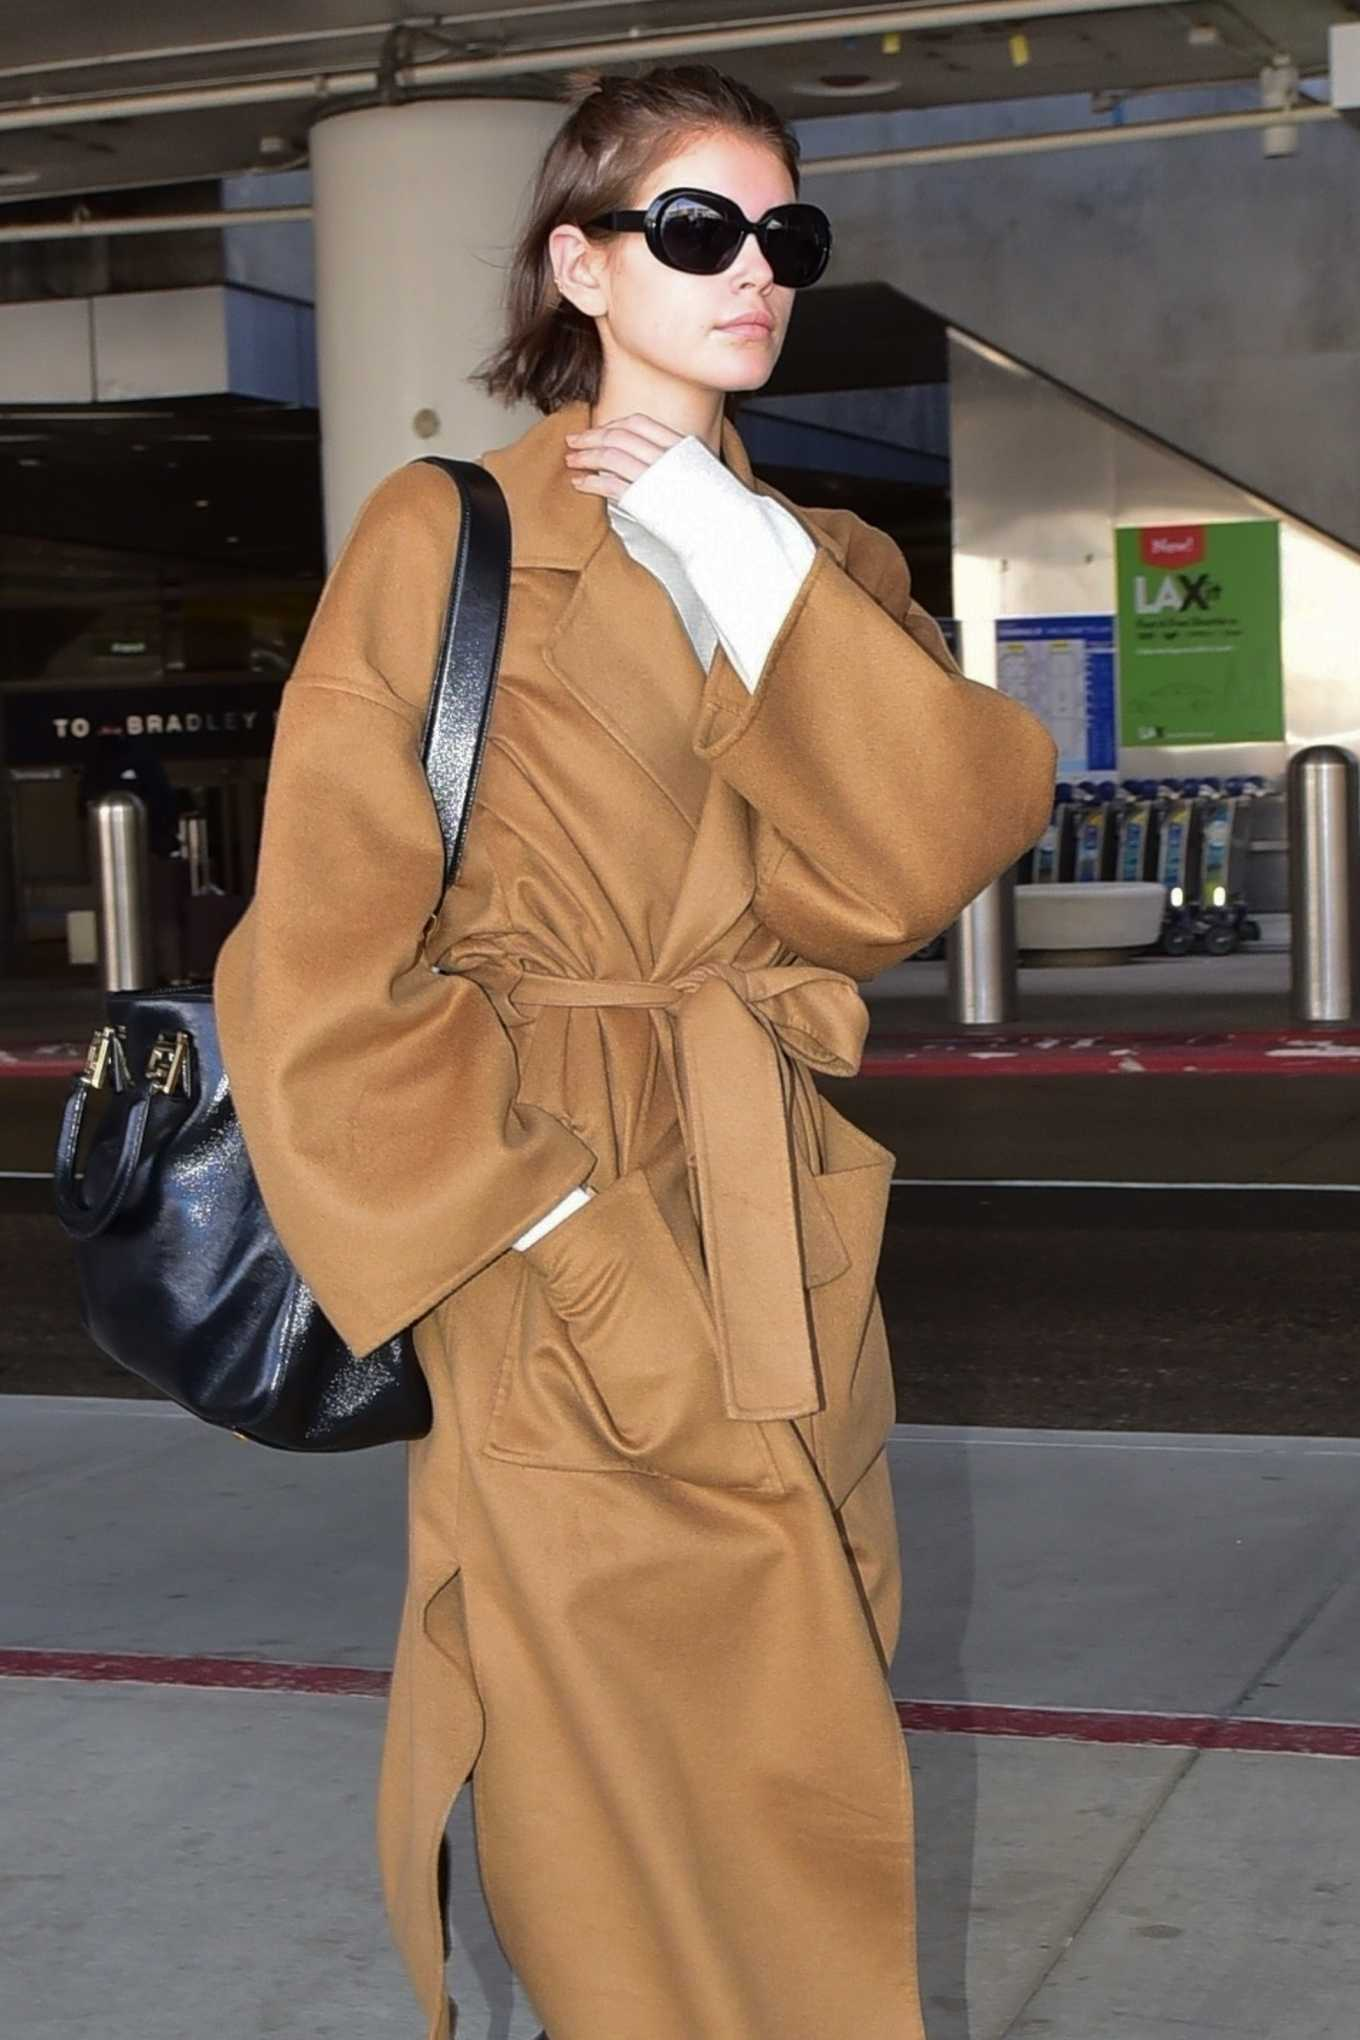 Kaia Gerber rocking a Oversized camel knotted design cashmere trench coat with a cashmere material, extra long sleeves, peak lapel collar, knotted and cinched waist